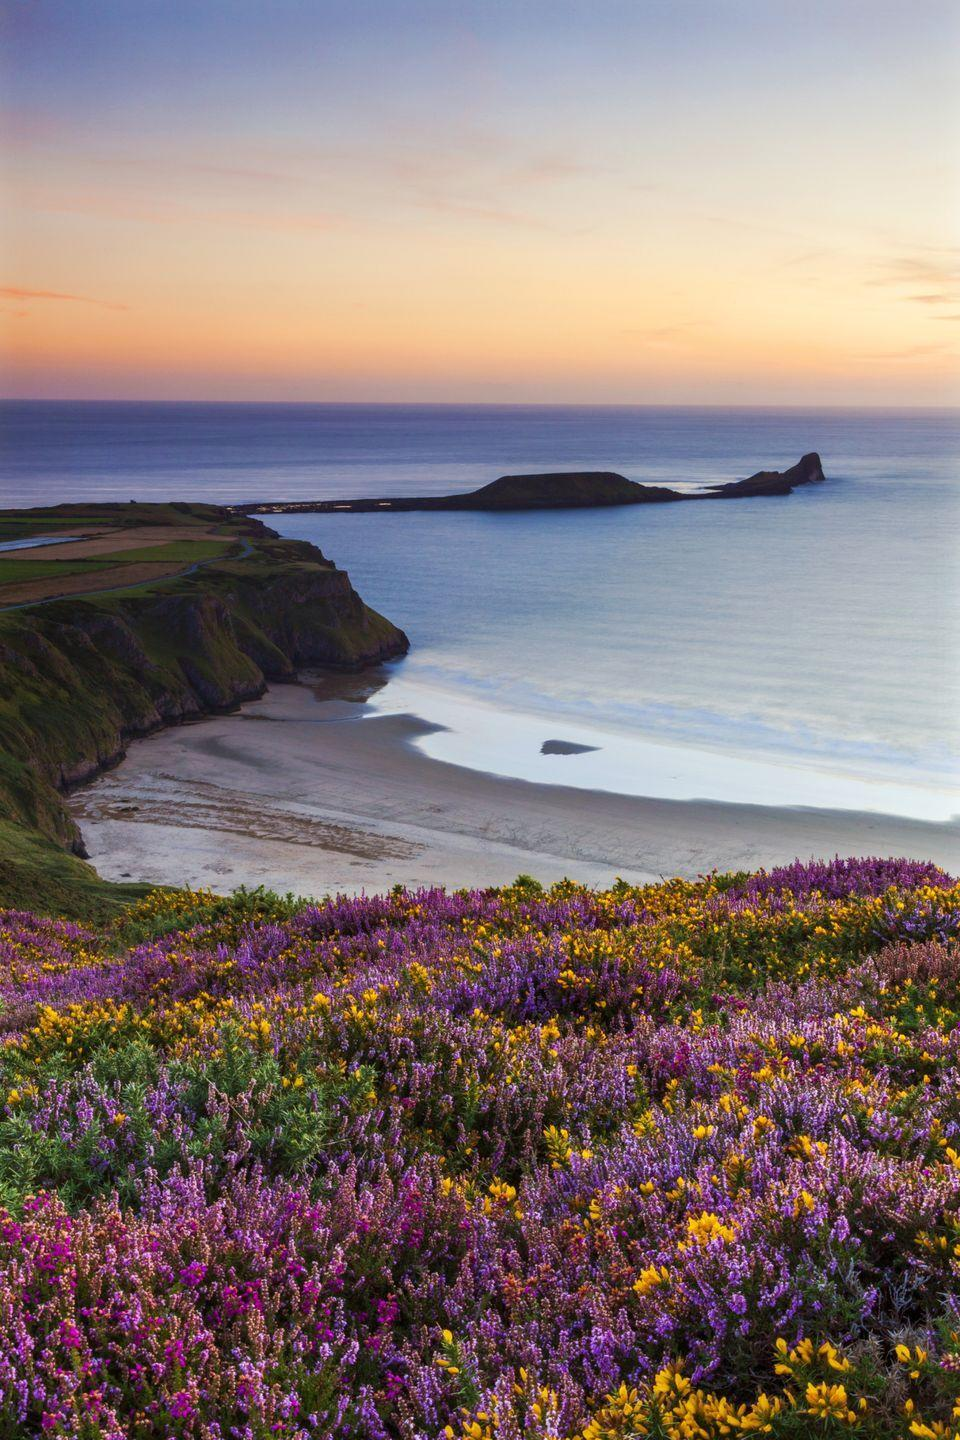 <p>The UK has some gorgeous beaches—even if the weather isn't ideal for sunbathing. Rhossili Bay on the tip of Gower Peninsula in Swansea is particularly pretty–just look at those blooms.</p>